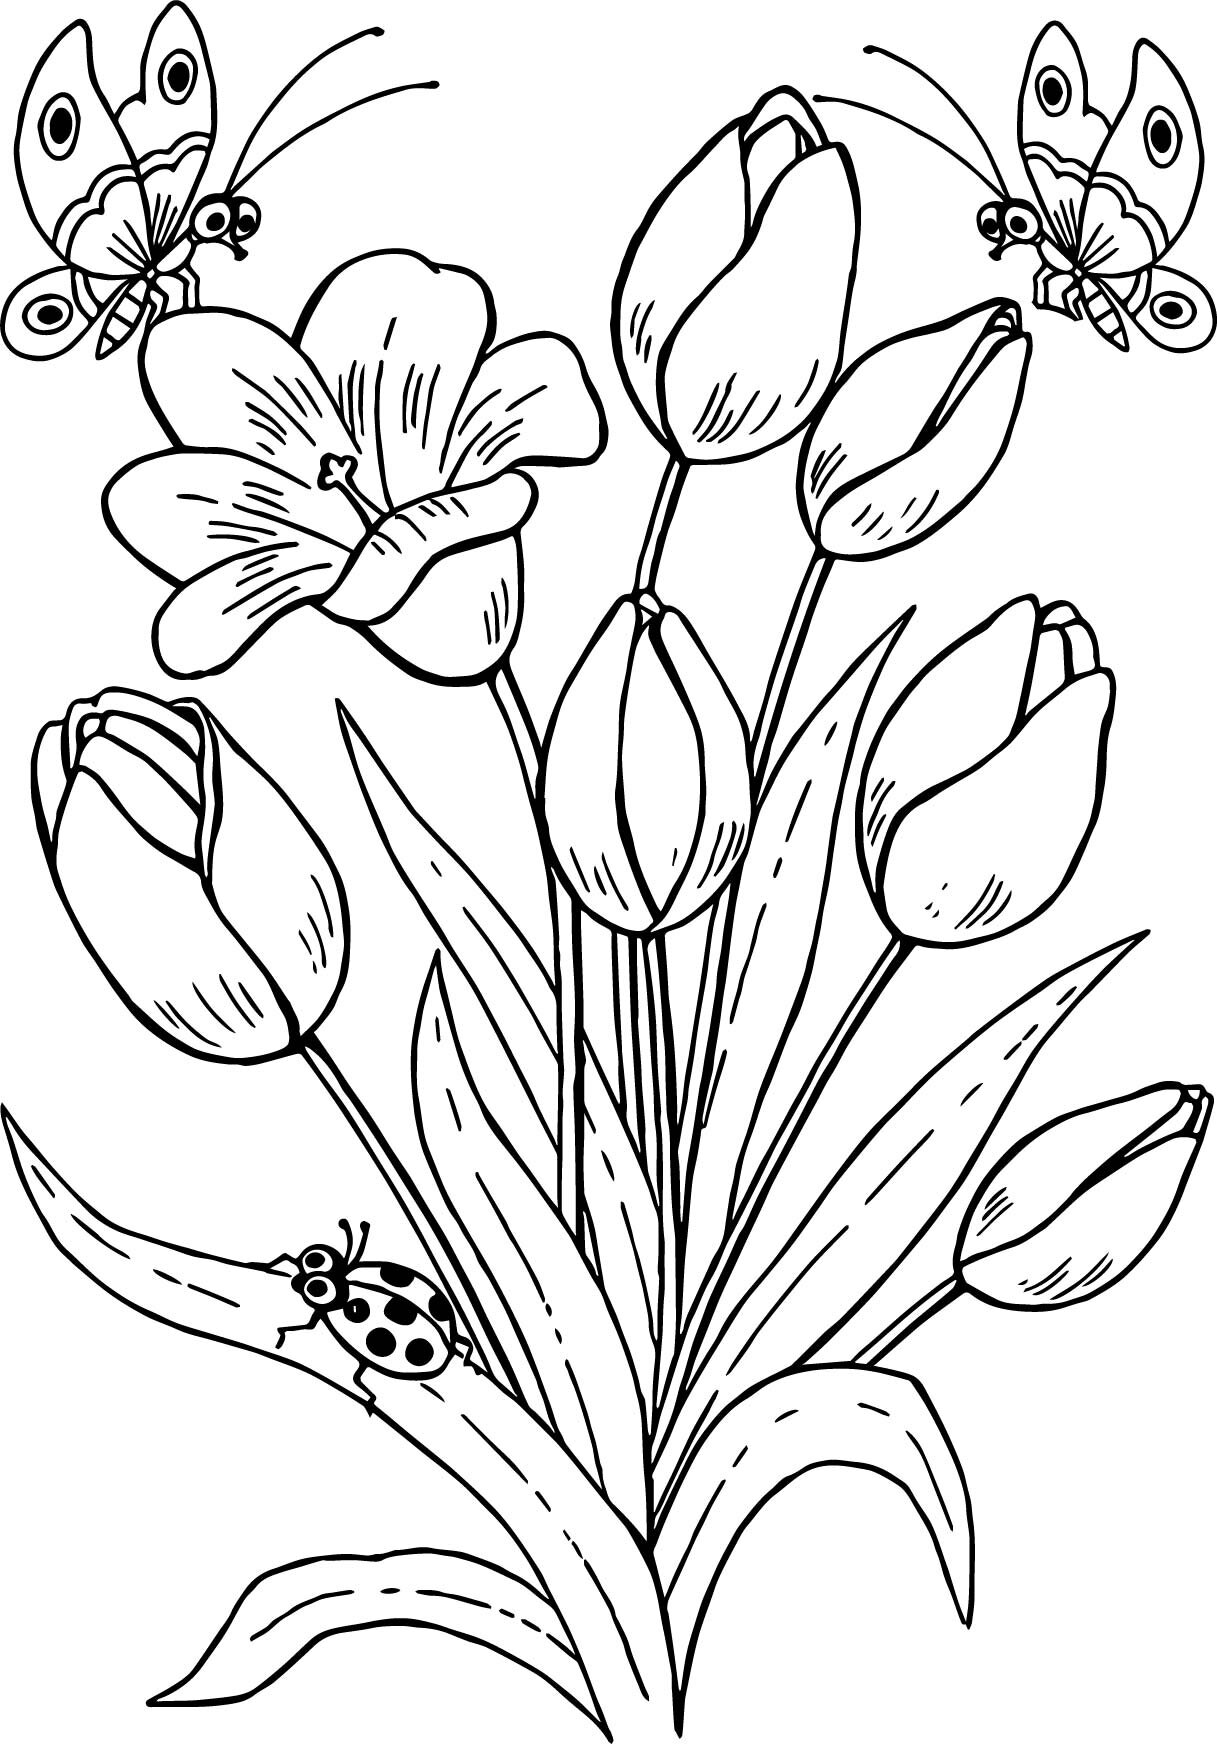 Pollinator Coloring Pages Seattle S Favorite Garden Store Since 1924 Swansons Nursery